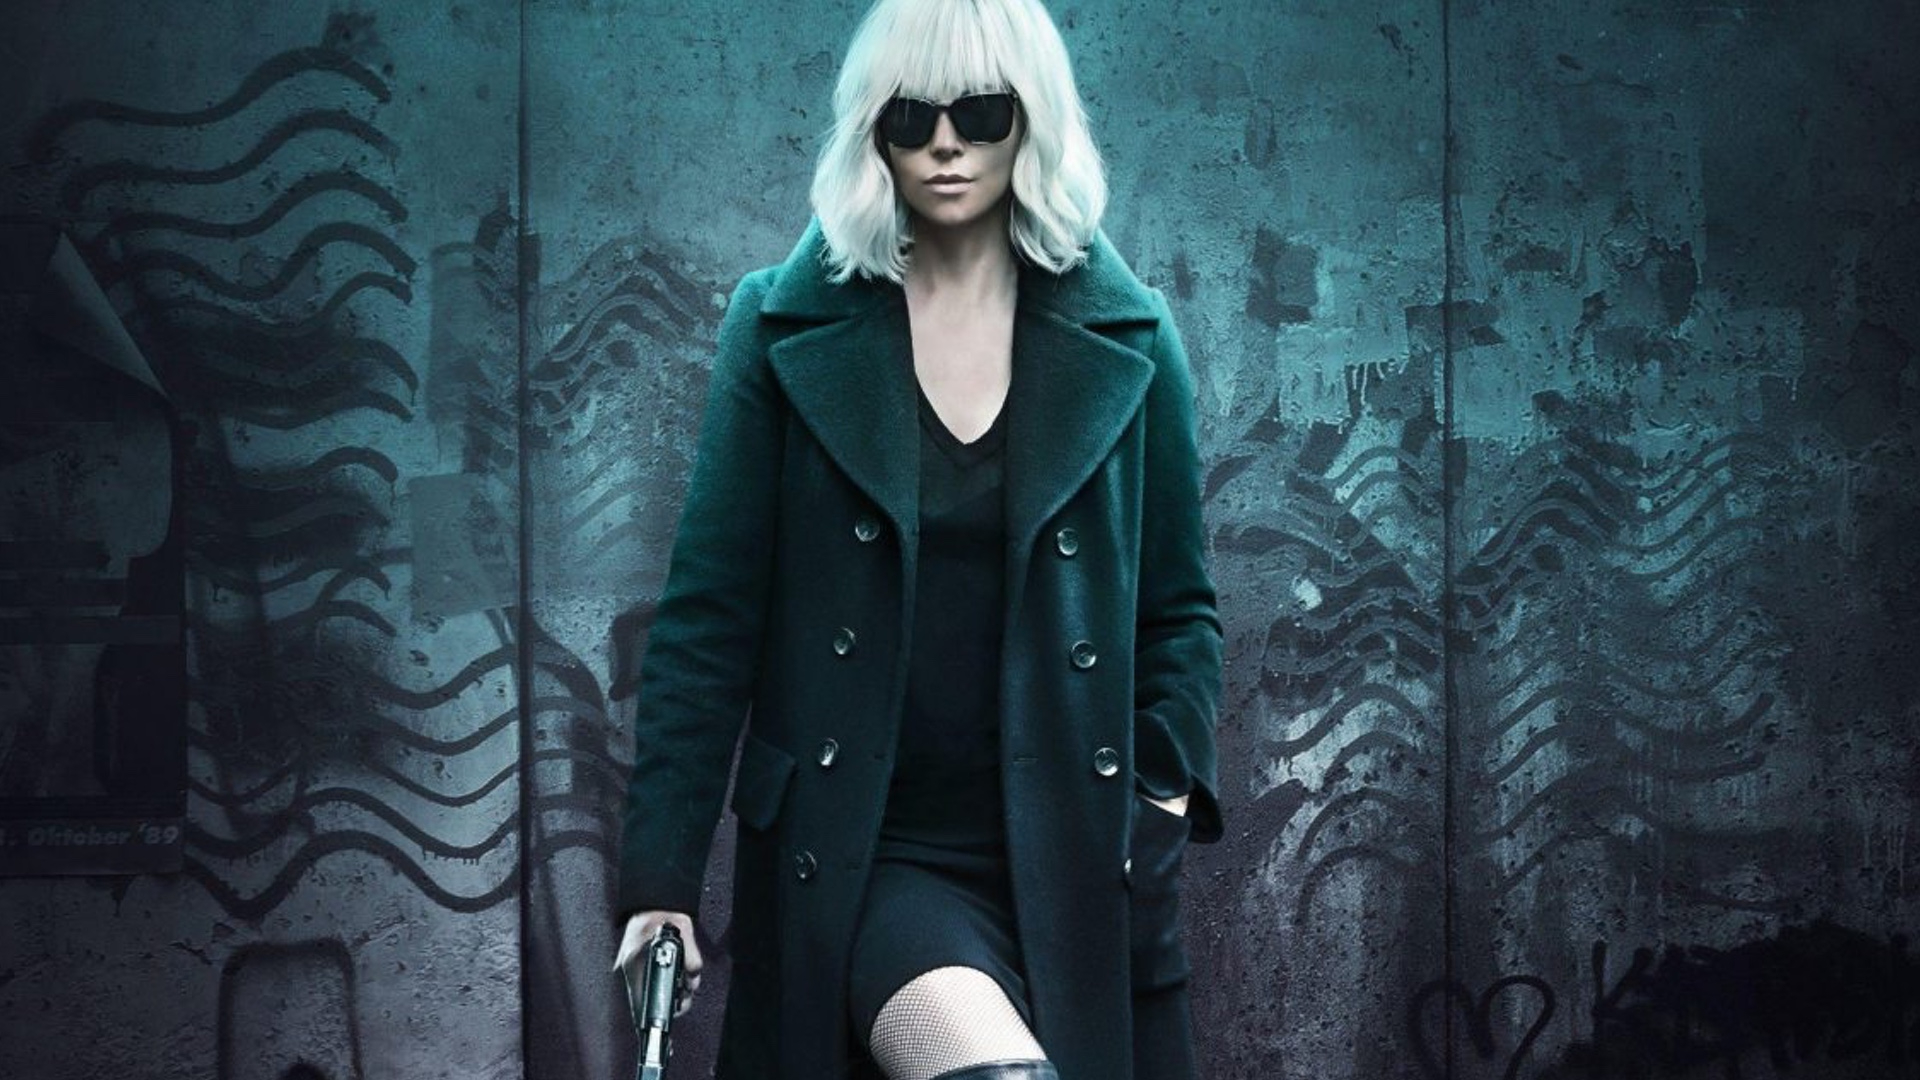 Atomic Blonde 2: All We Know About The Charlize Theron Sequel